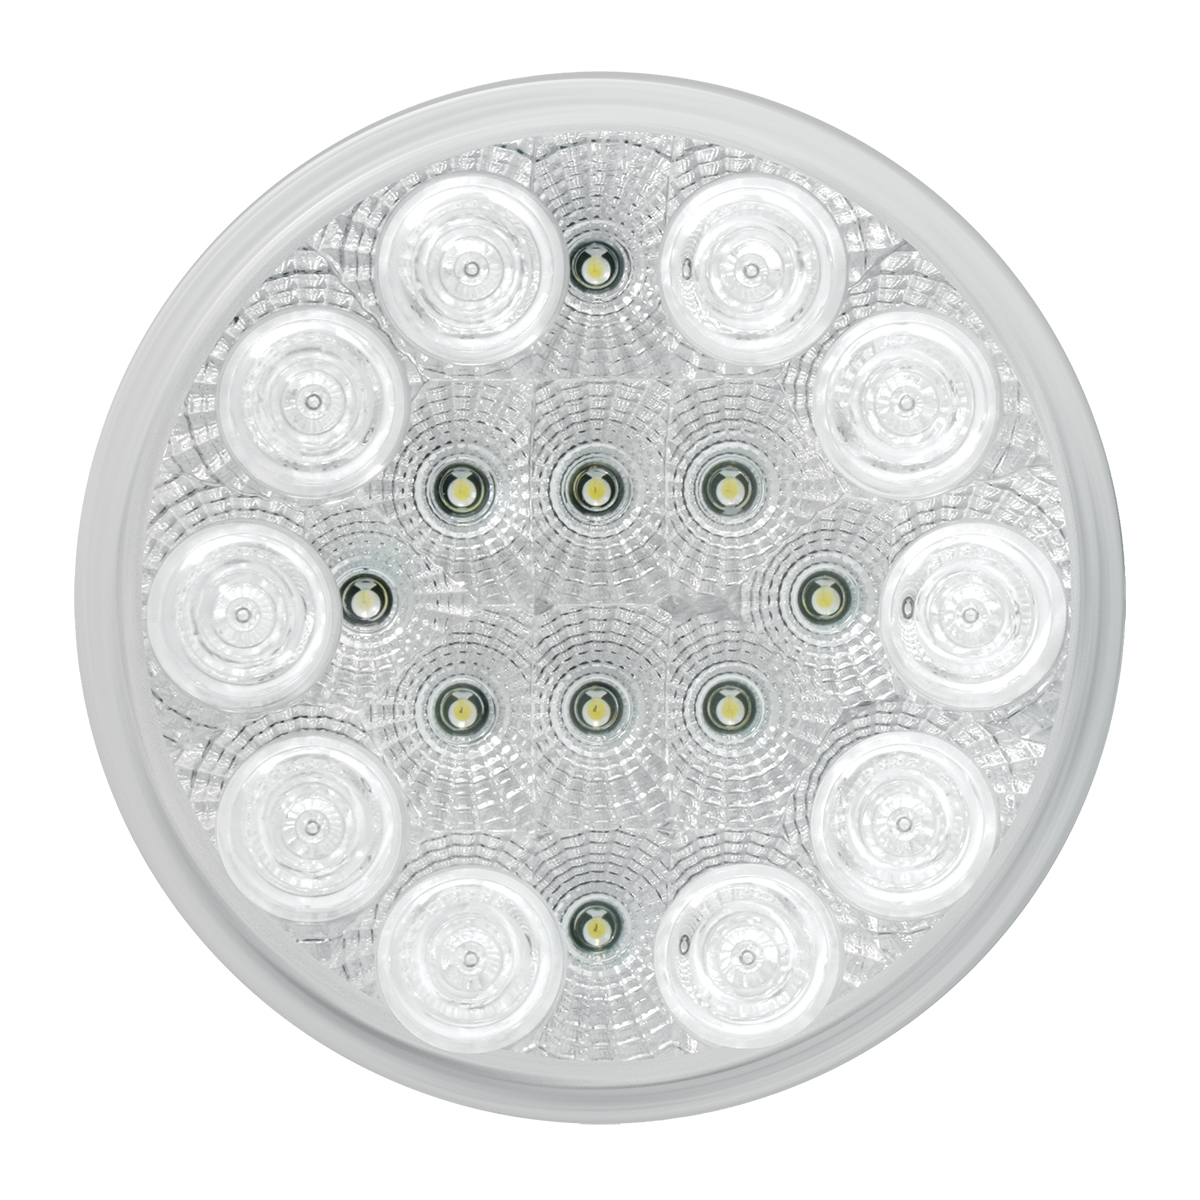 "77092 4"" Spyder LED Light in White/Clear"